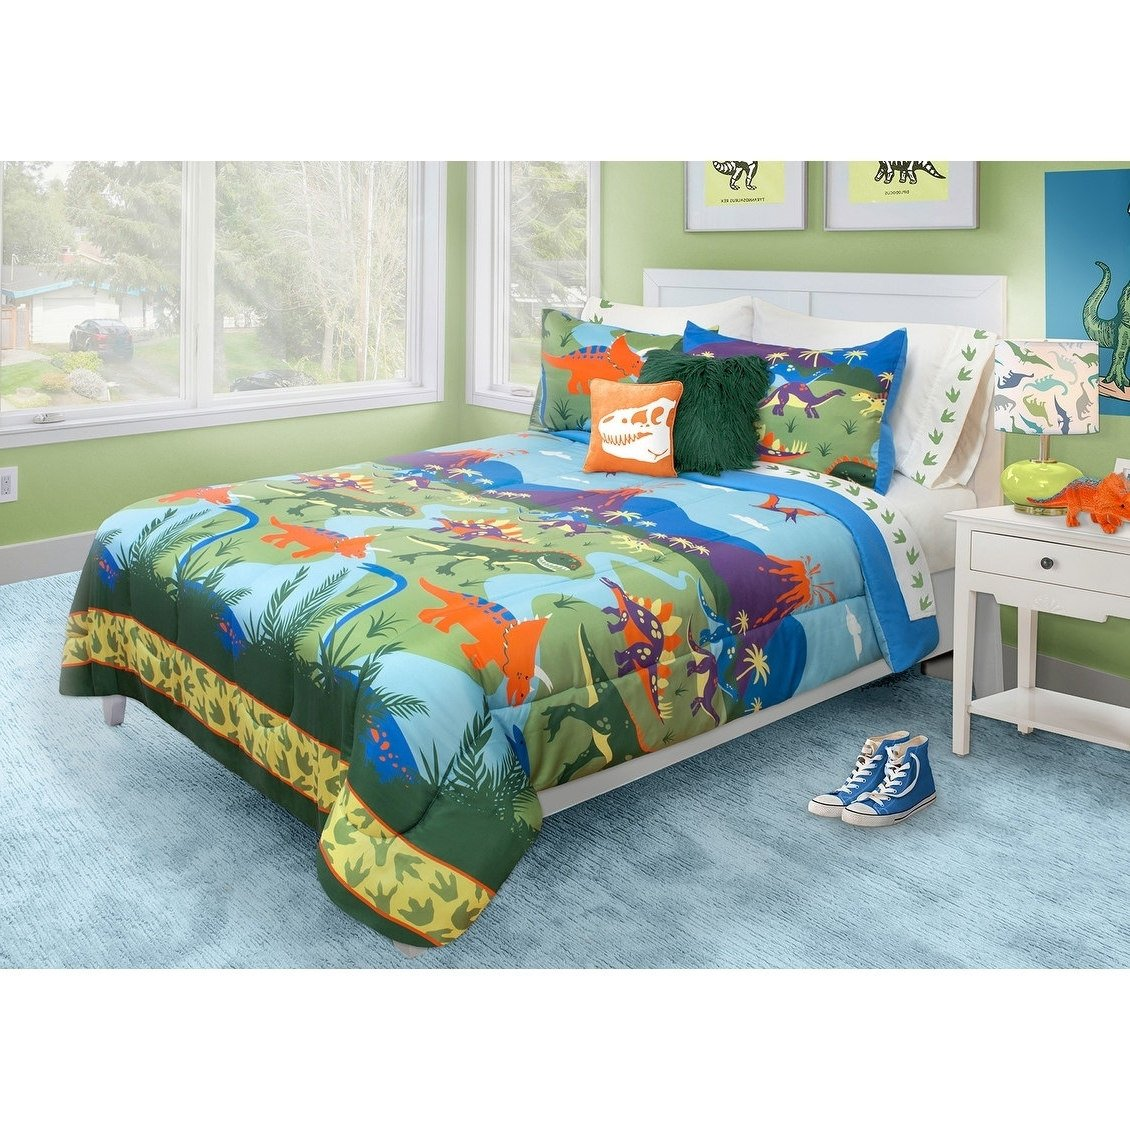 3 Piece Kids Multi Dinosaur Theme Comforter Full Queen Set, Beautiful Old Aged Animals, Volcano, Lava Mountains Print, Dino Paws Borders, Colorful Adventurer Print Bedding, Hypoallergenic, Polyester by ON